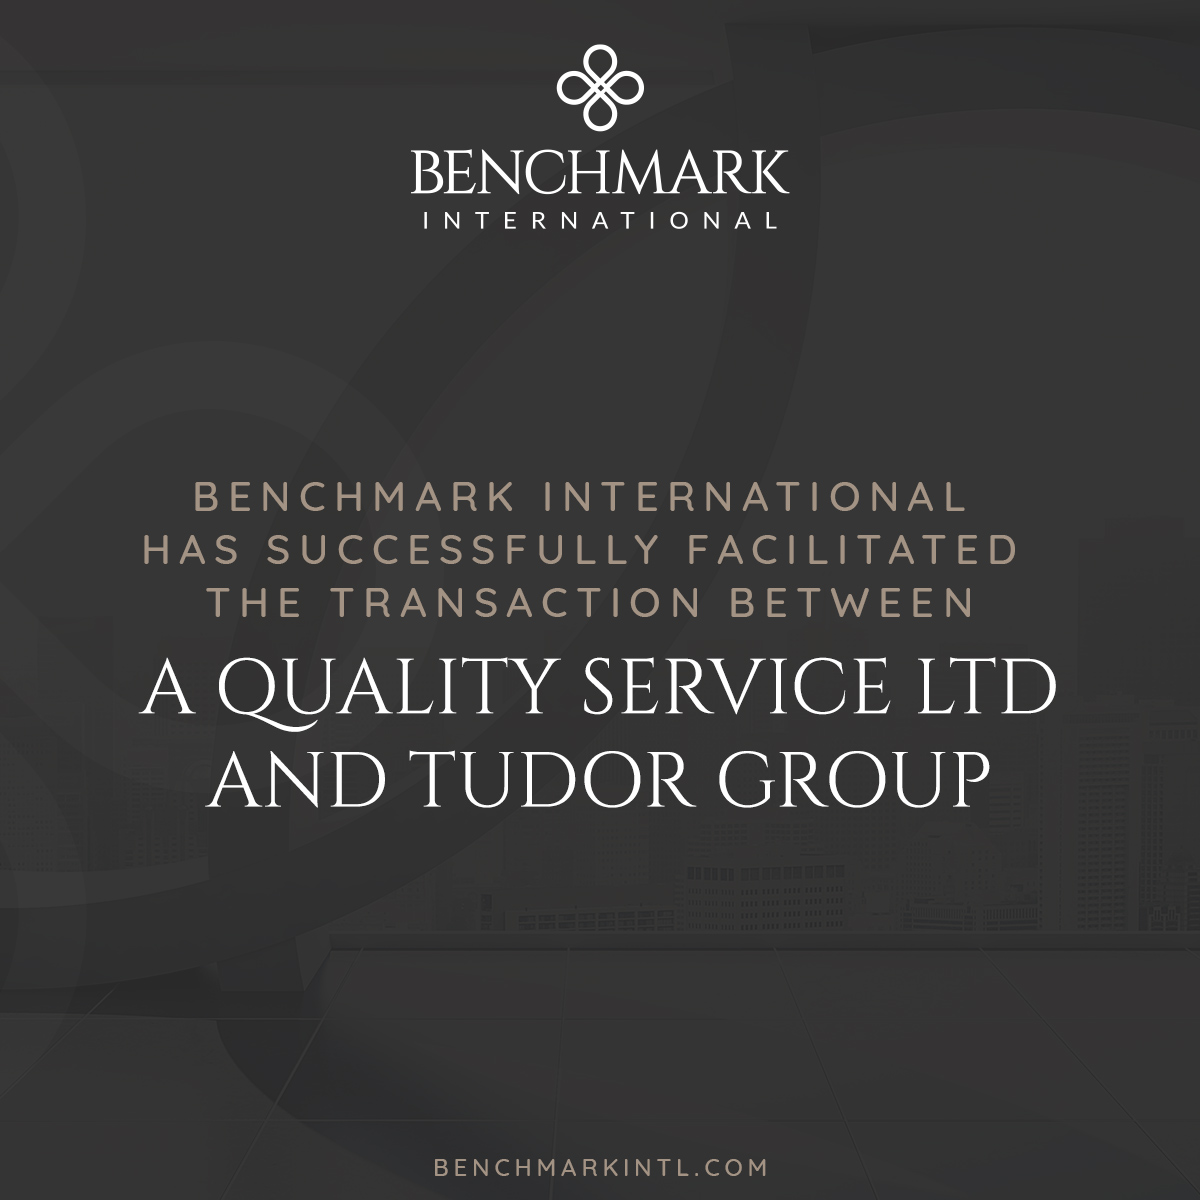 A Quality Service acquired by Tudor Group